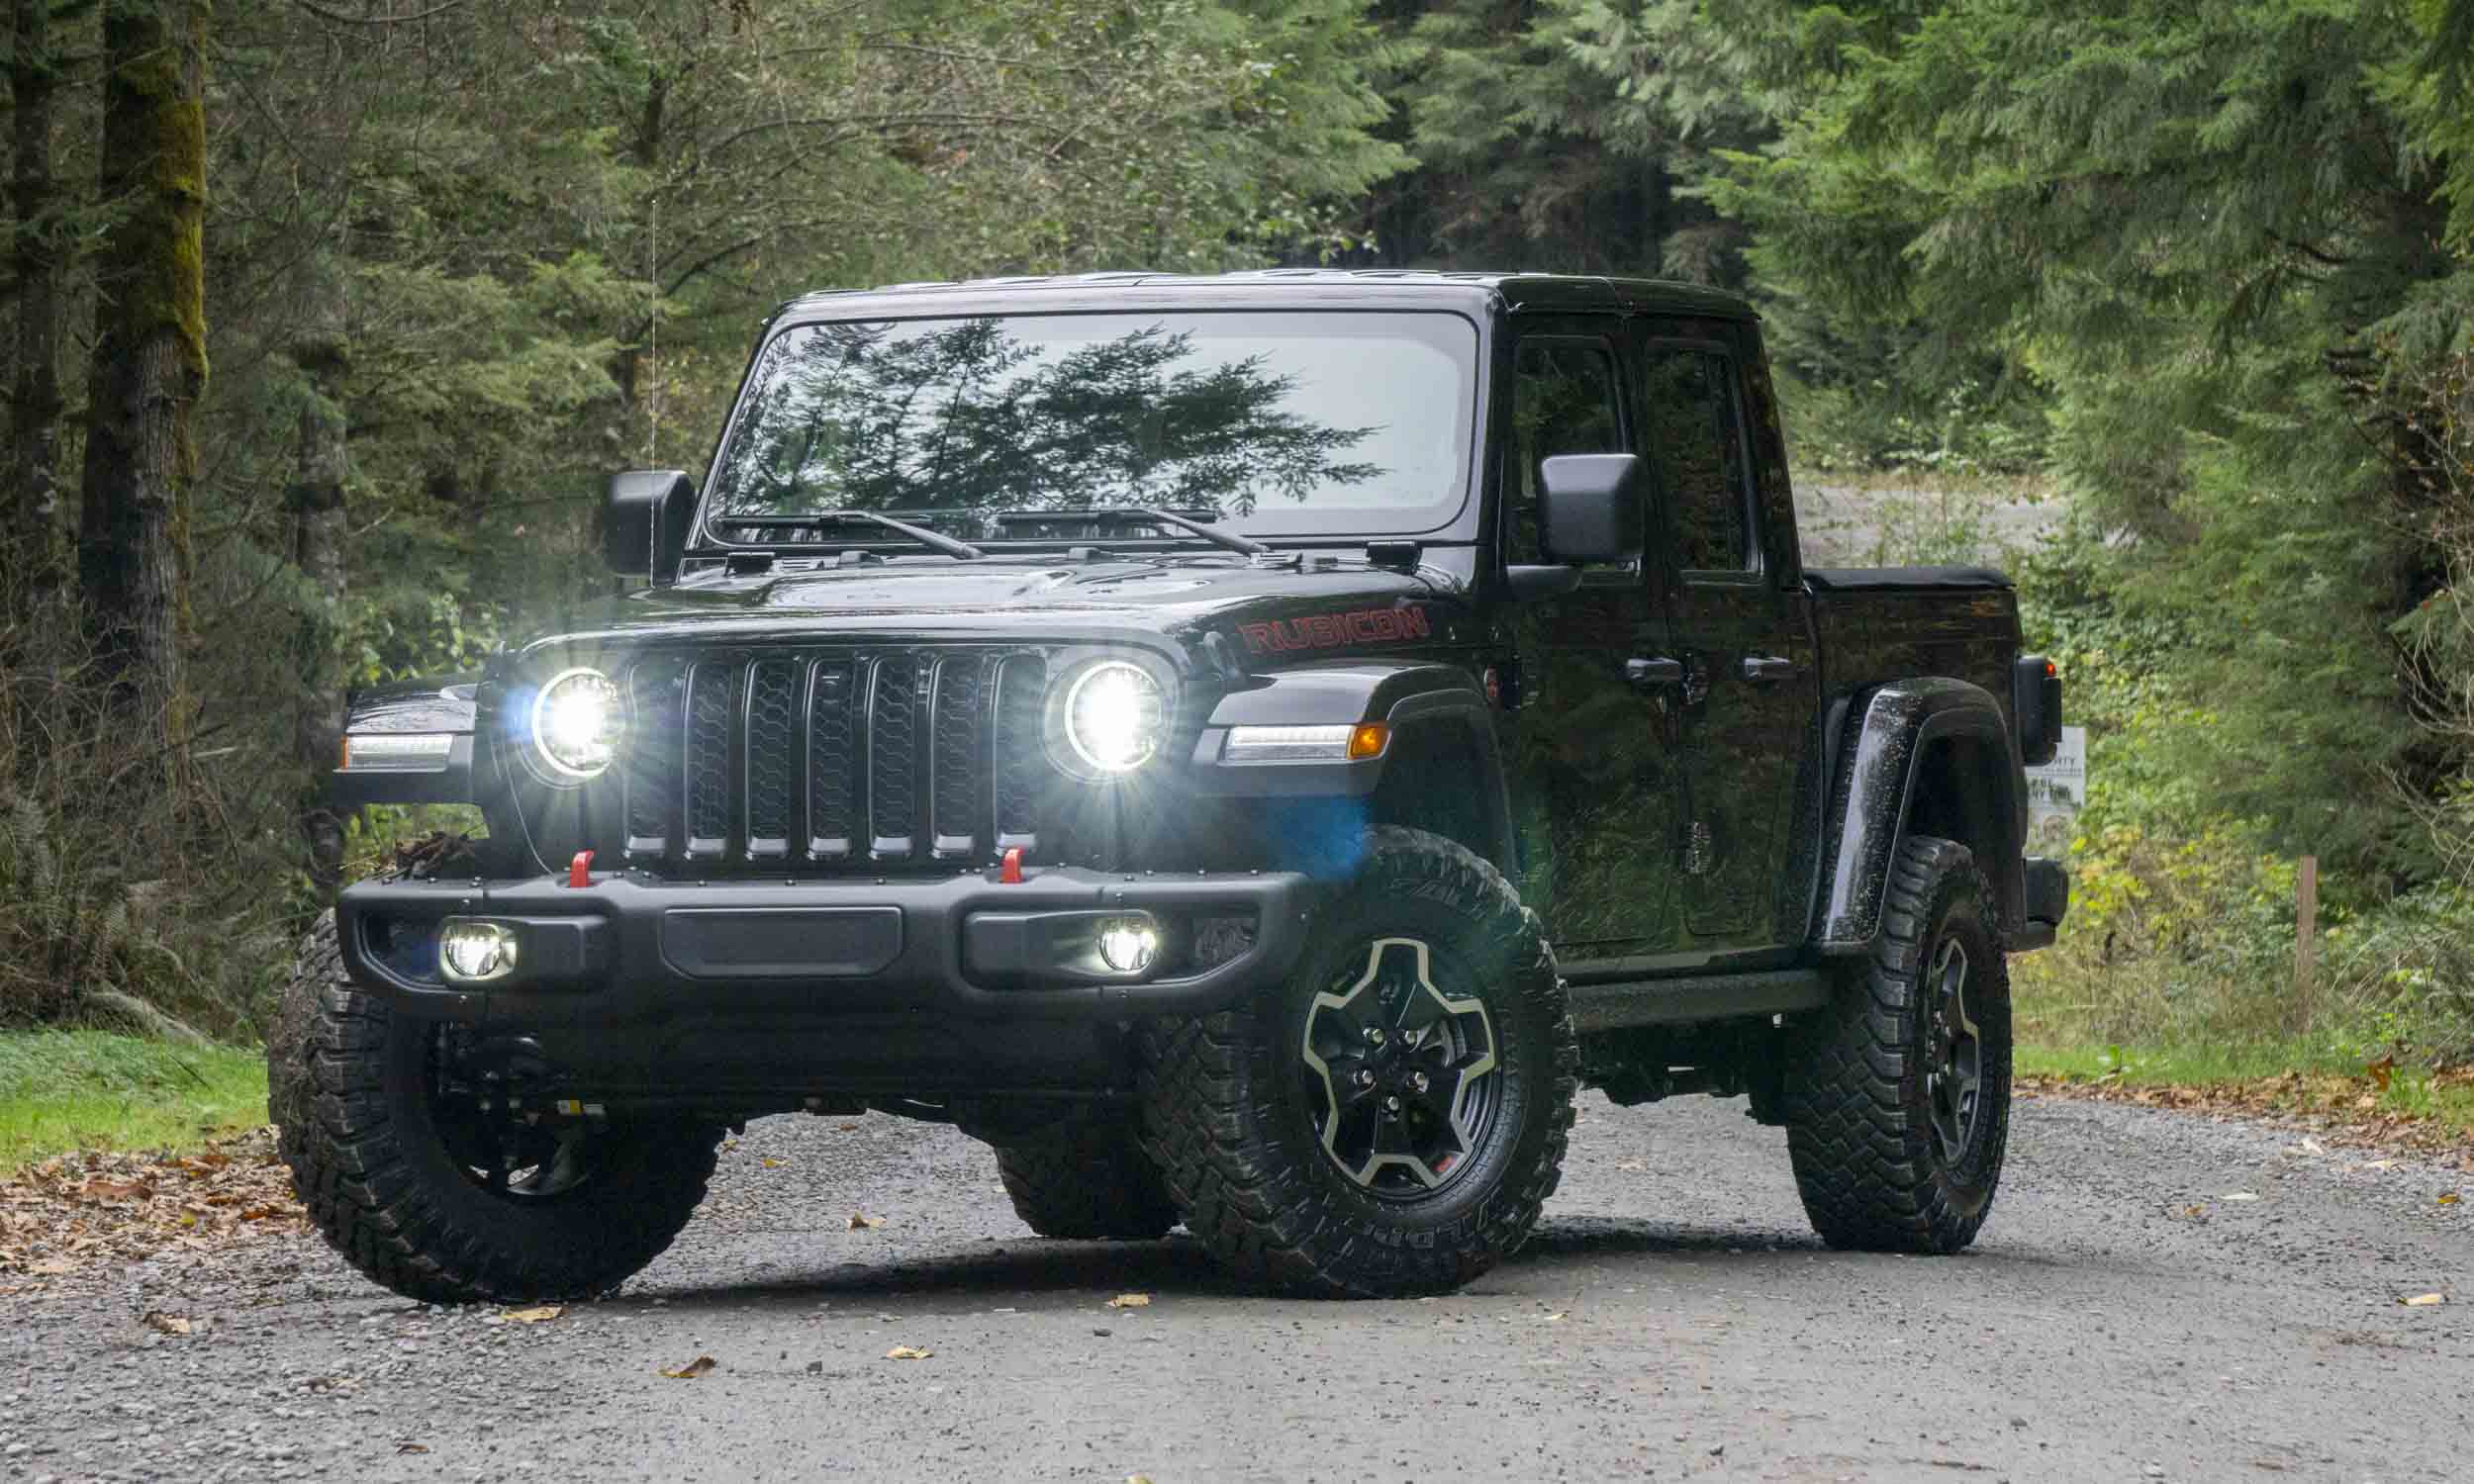 2021 jeep gladiator rubicon diesel: photos and review